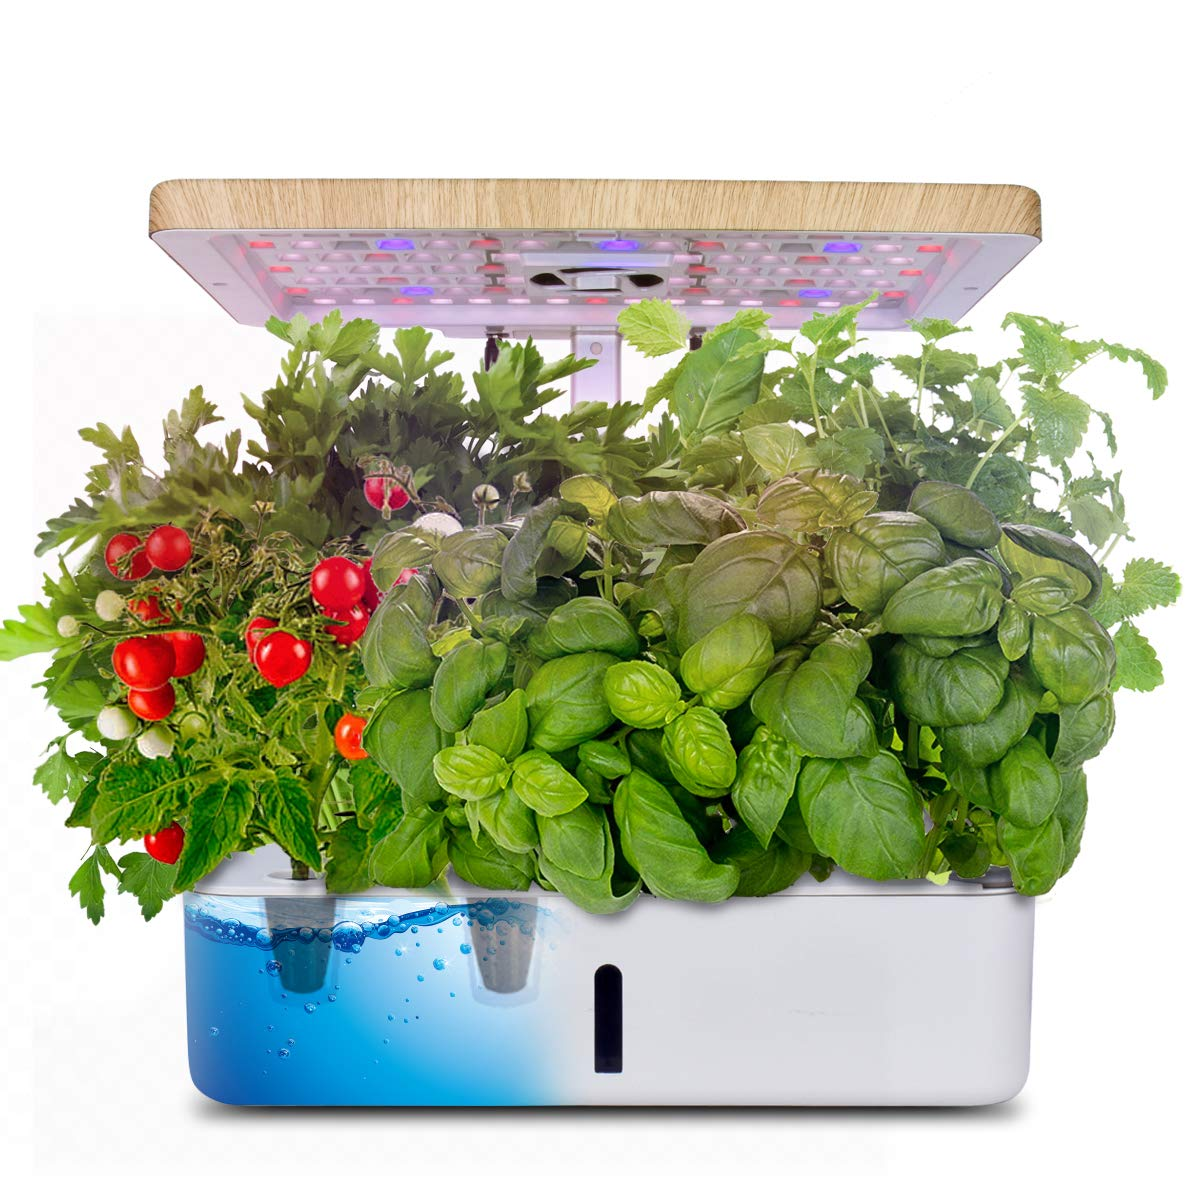 Moistenland Hydroponics Growing System Indoor Herb Garden Starter Kit W Led Grow Light Plant Germination Kits 12 Plant Pots For Home Kitchen Gardening 12 Pots